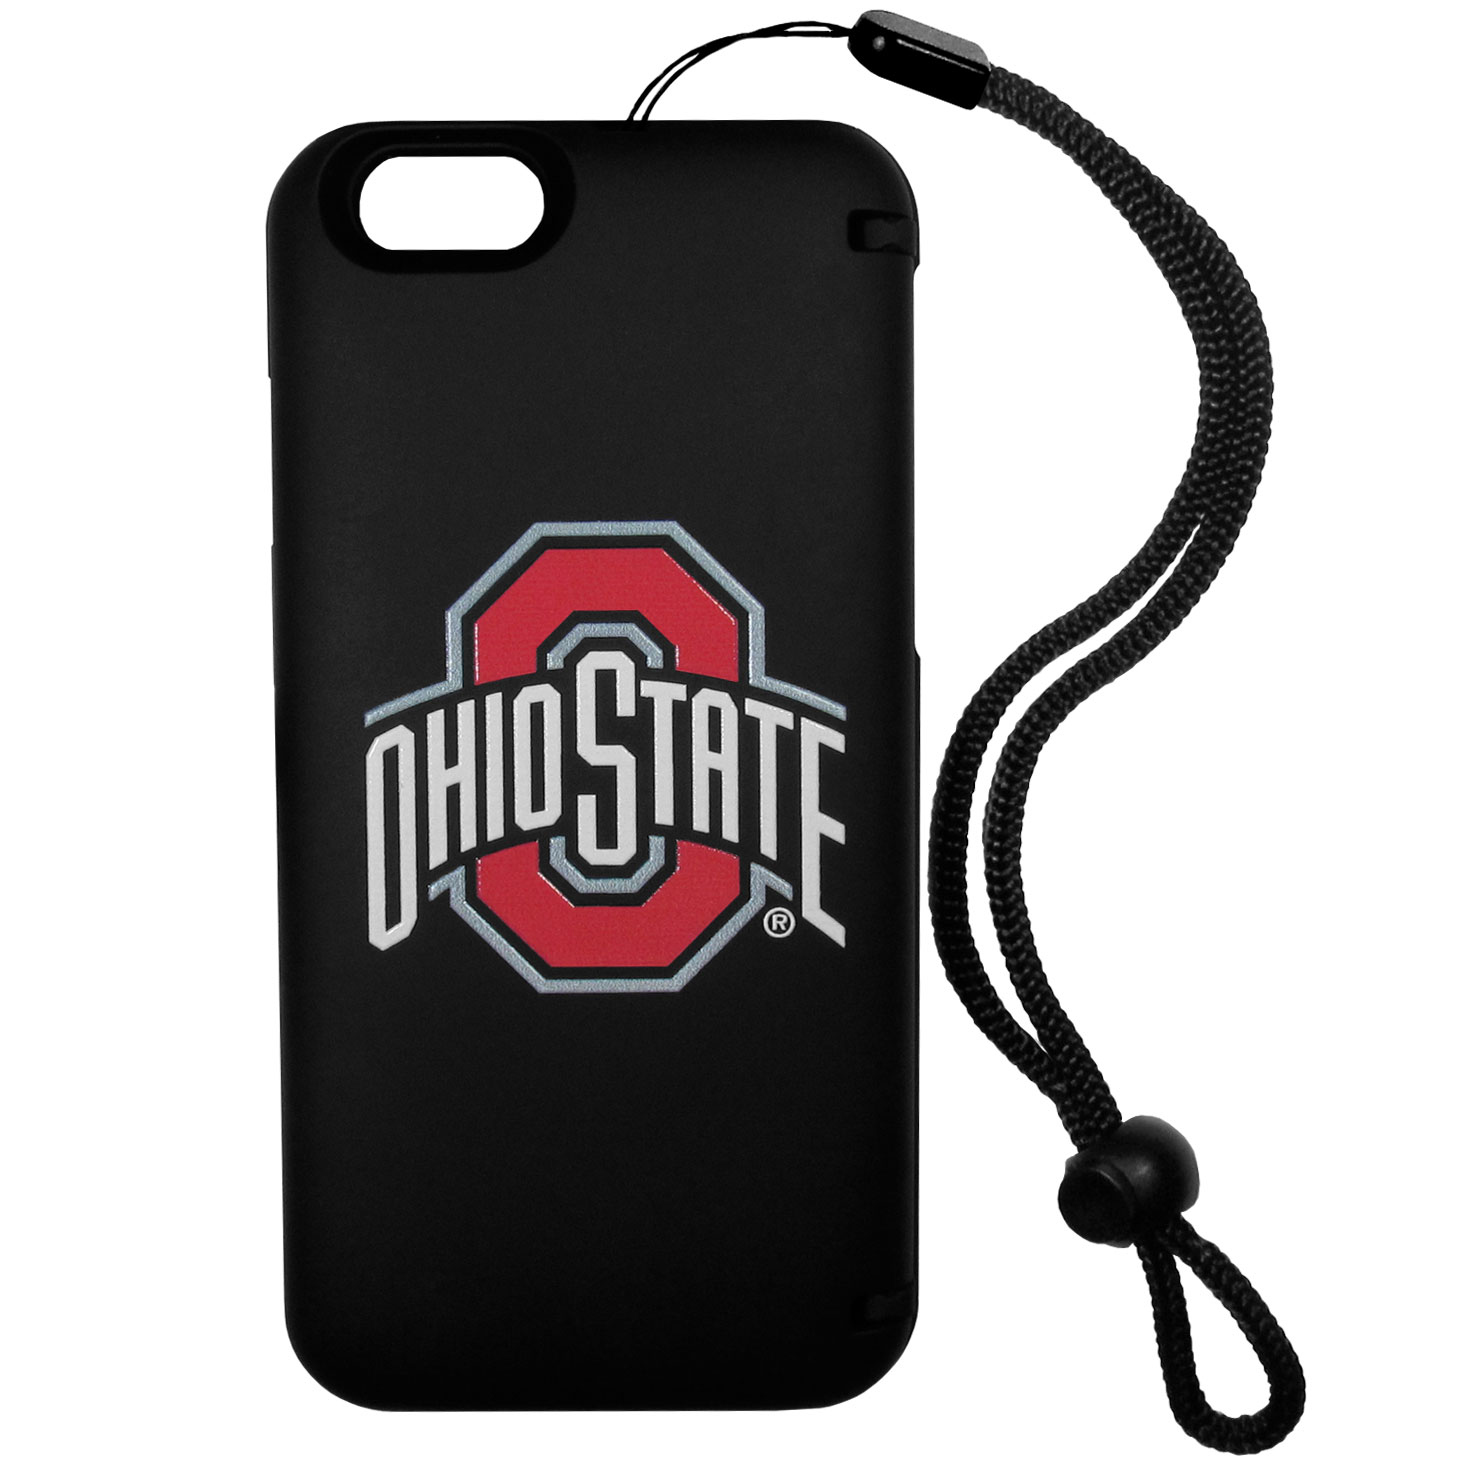 Ohio St. Buckeyes iPhone 6 Everything Case - This case really does have everything but the kitchen sink! The hidden compartment lets you keep your cards, money and tickets to the big game safe and secure and has a compact mirror so you can make sure your game face is ready to go. It also comes with a kickstand to make chatting and watching videos a breeze. The wrist strap allows you to travel with ease with your everything case. If that's not enough, it also comes with the Ohio St. Buckeyes logo printed in expert detail on the front.